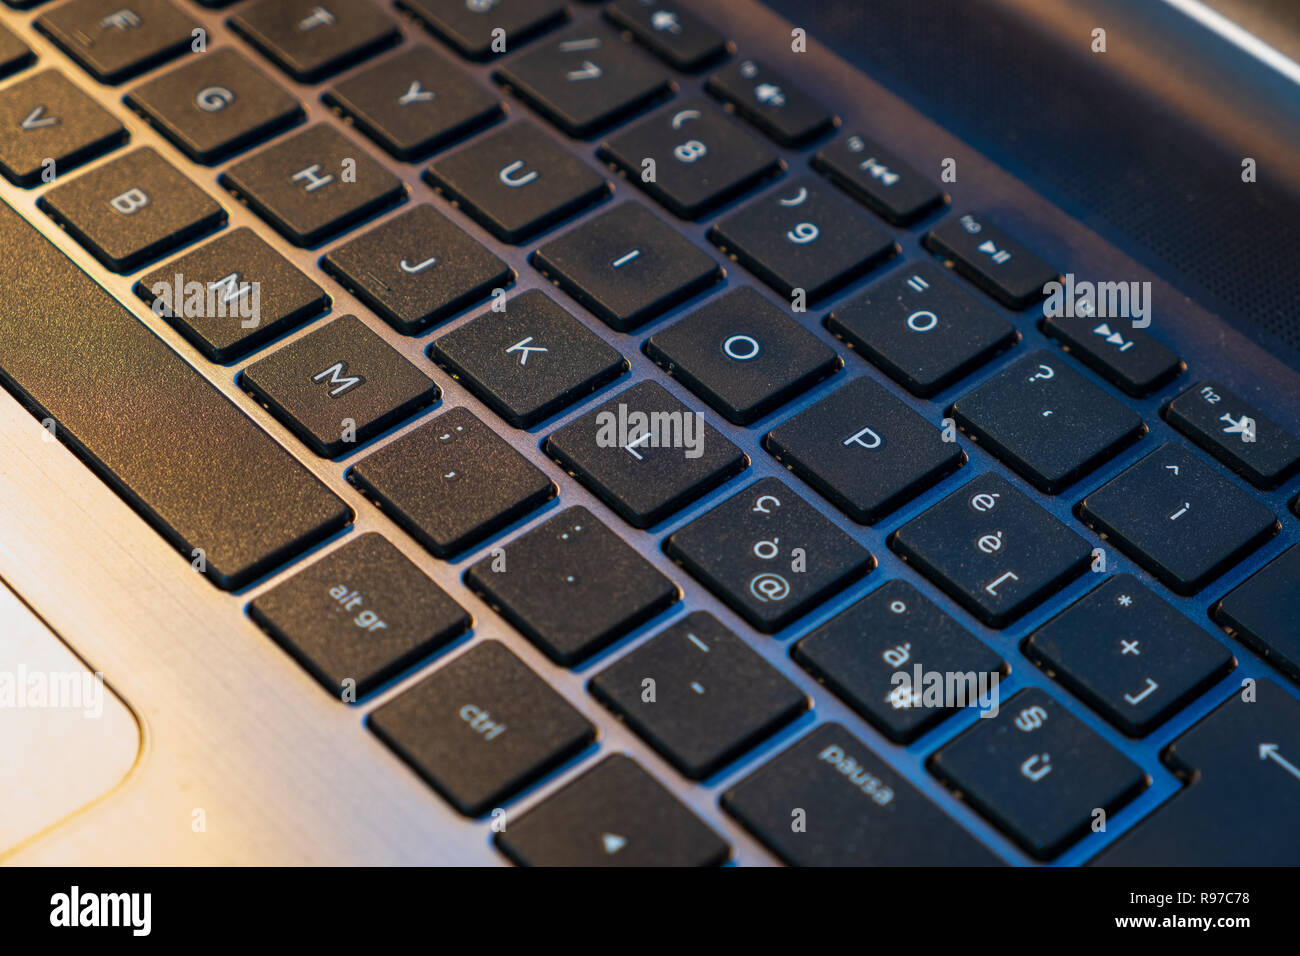 c39dbe9c7b4 English keyboard of a latest generation and new generation computer. - Stock  Image